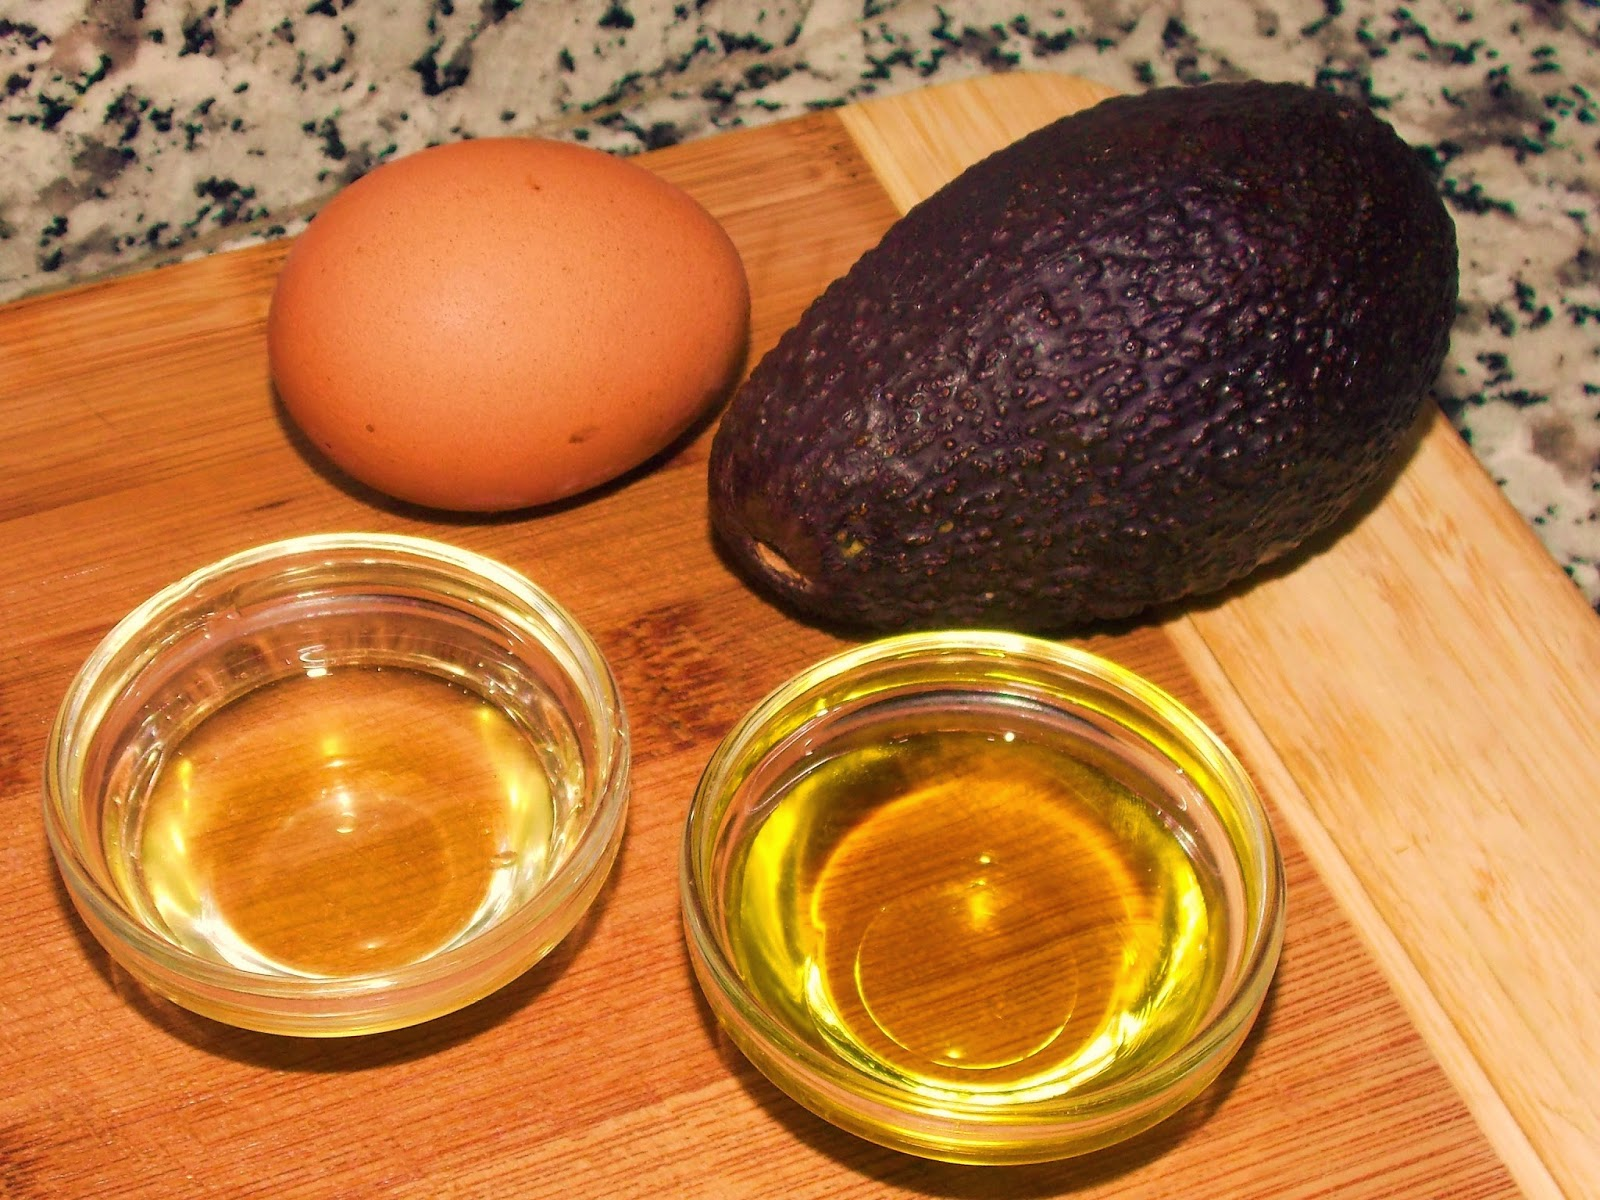 egg, avocado, argan oil, olive oil,Beauty, how to make your own fresh hair masks, diy beauty, how to make, Haircare, diy haircare, hair, you are what you eat, be good to your hair,